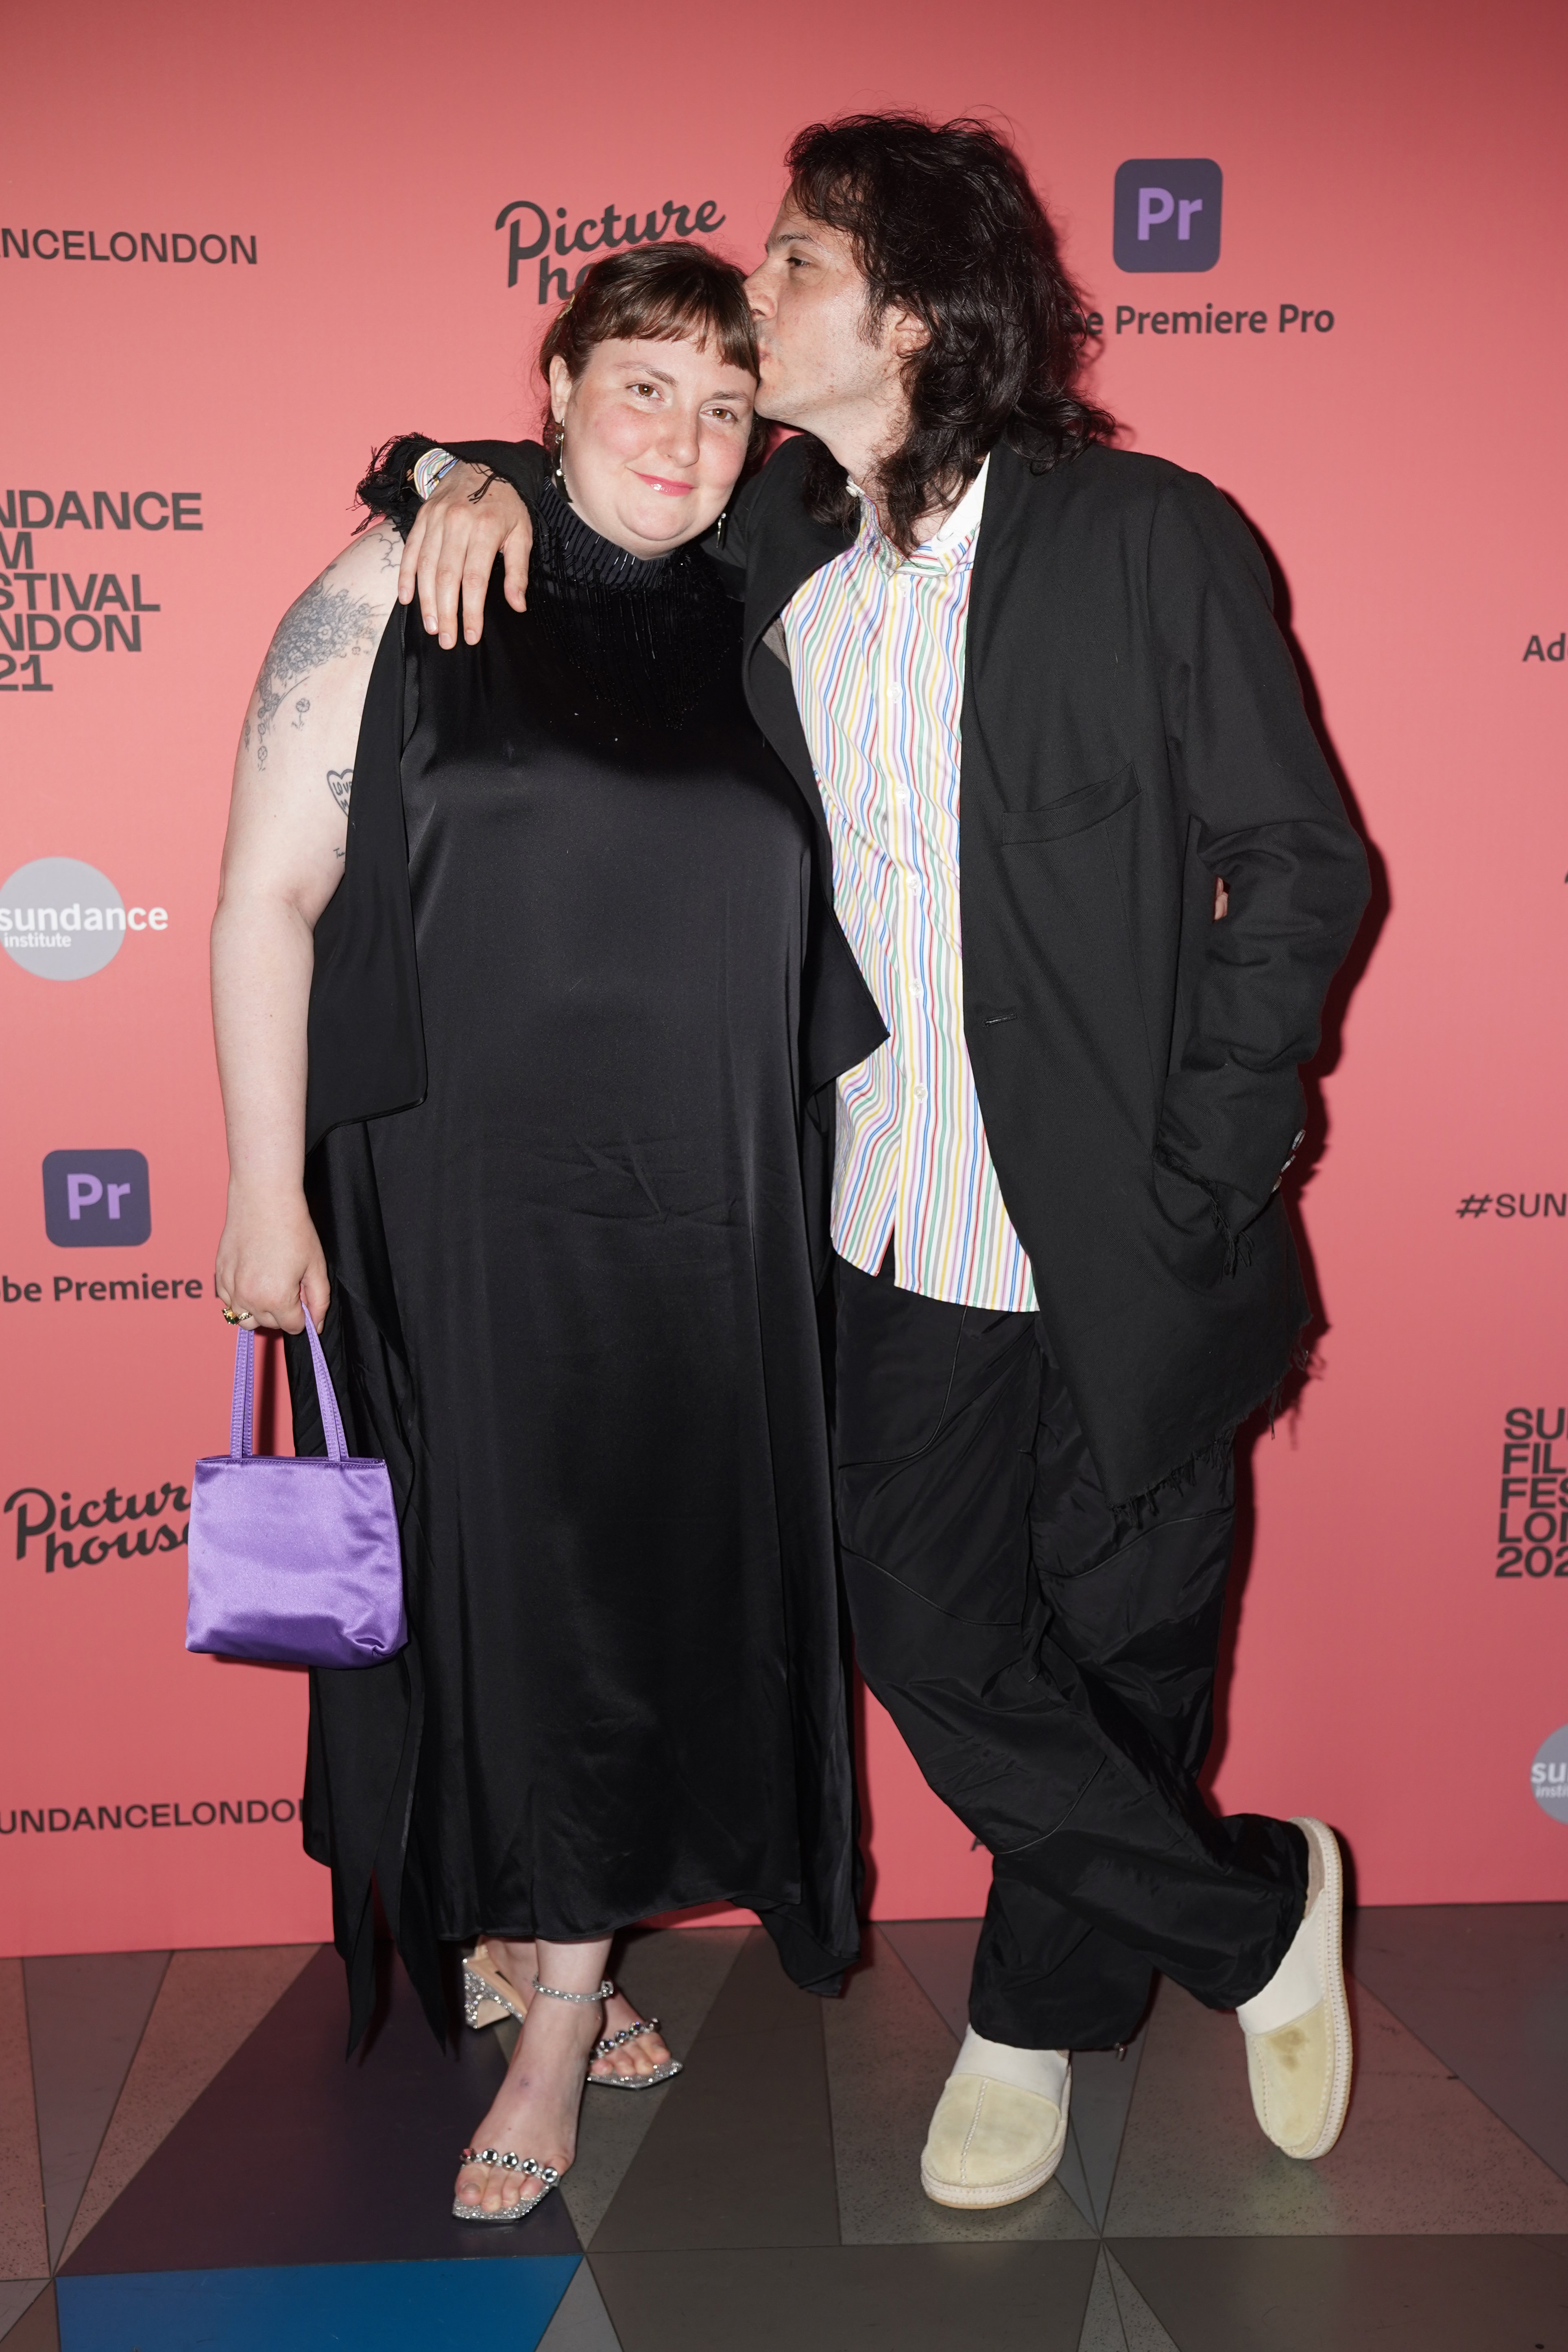 Lena Dunham and Luis Felber attend the Sundance London Film Festival screening of Zola, August 2021. | Photo: Getty Image